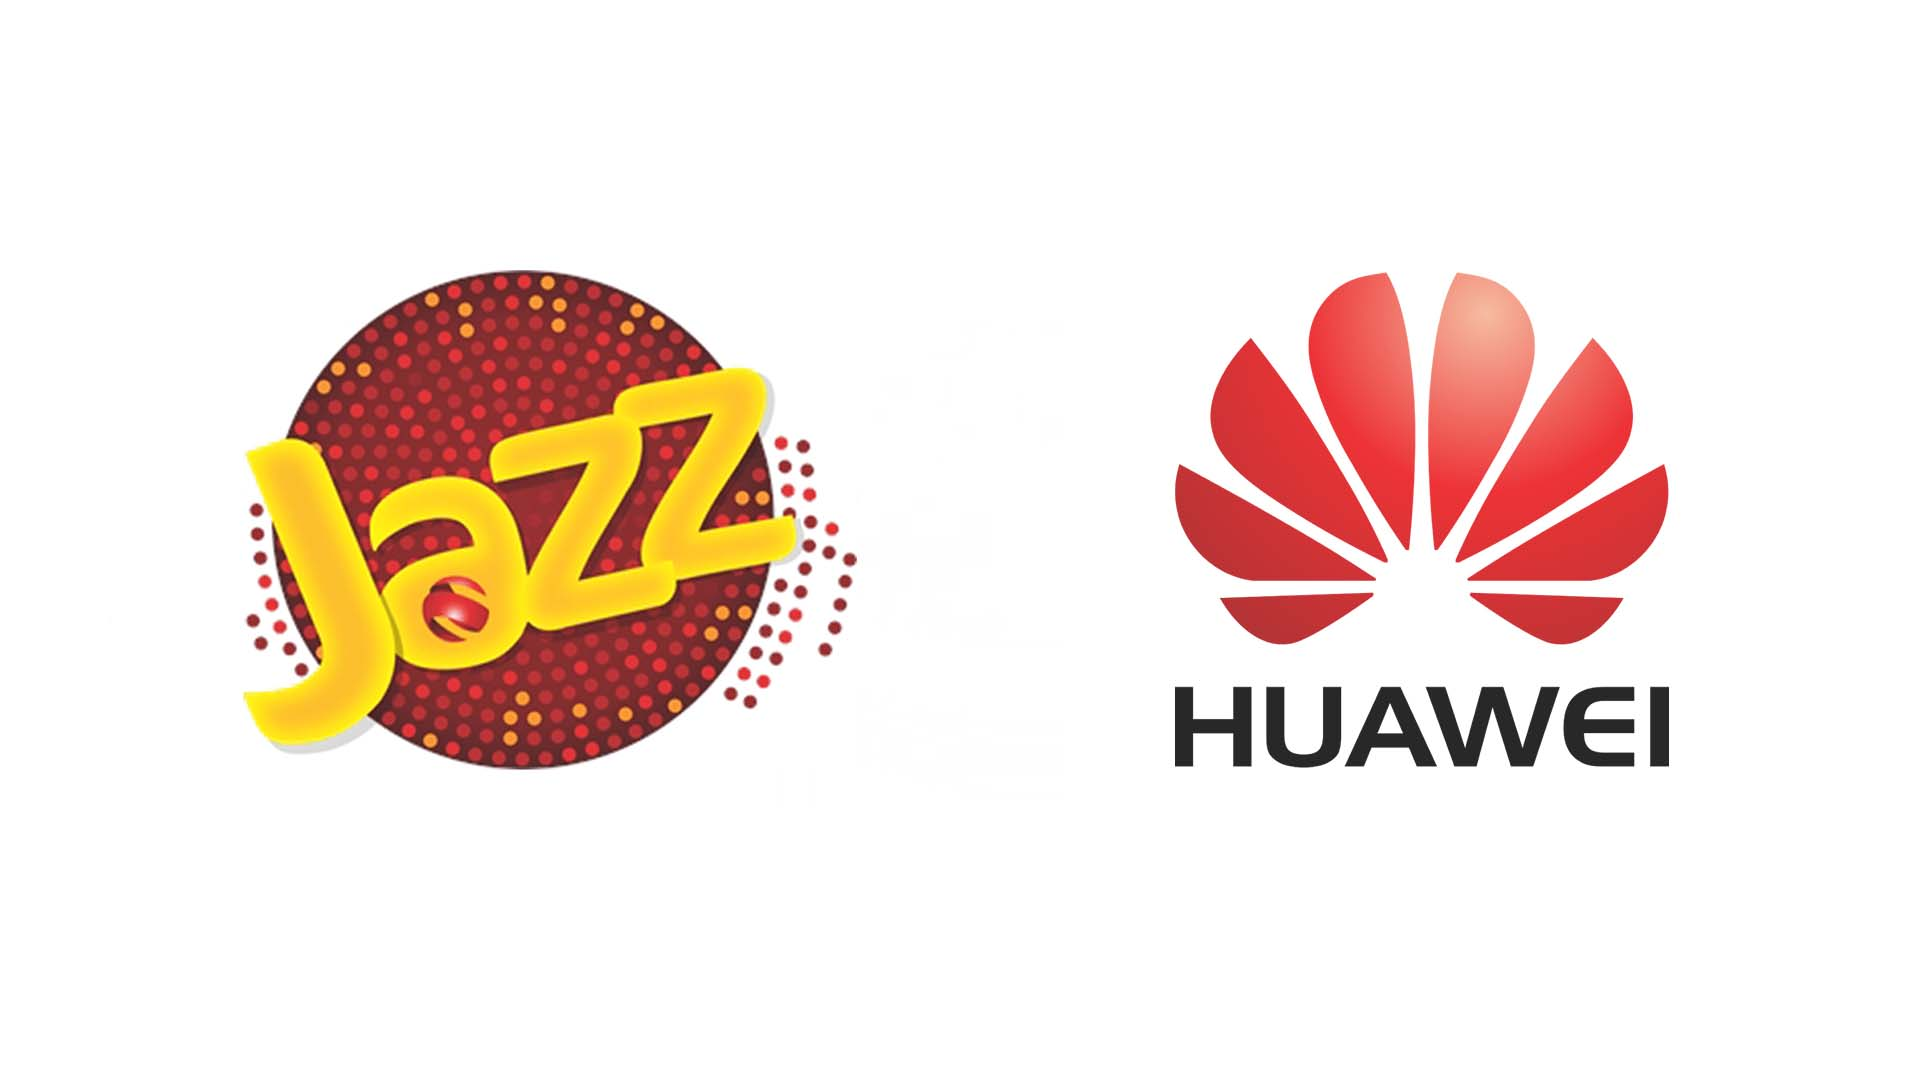 Jazz and Huawei